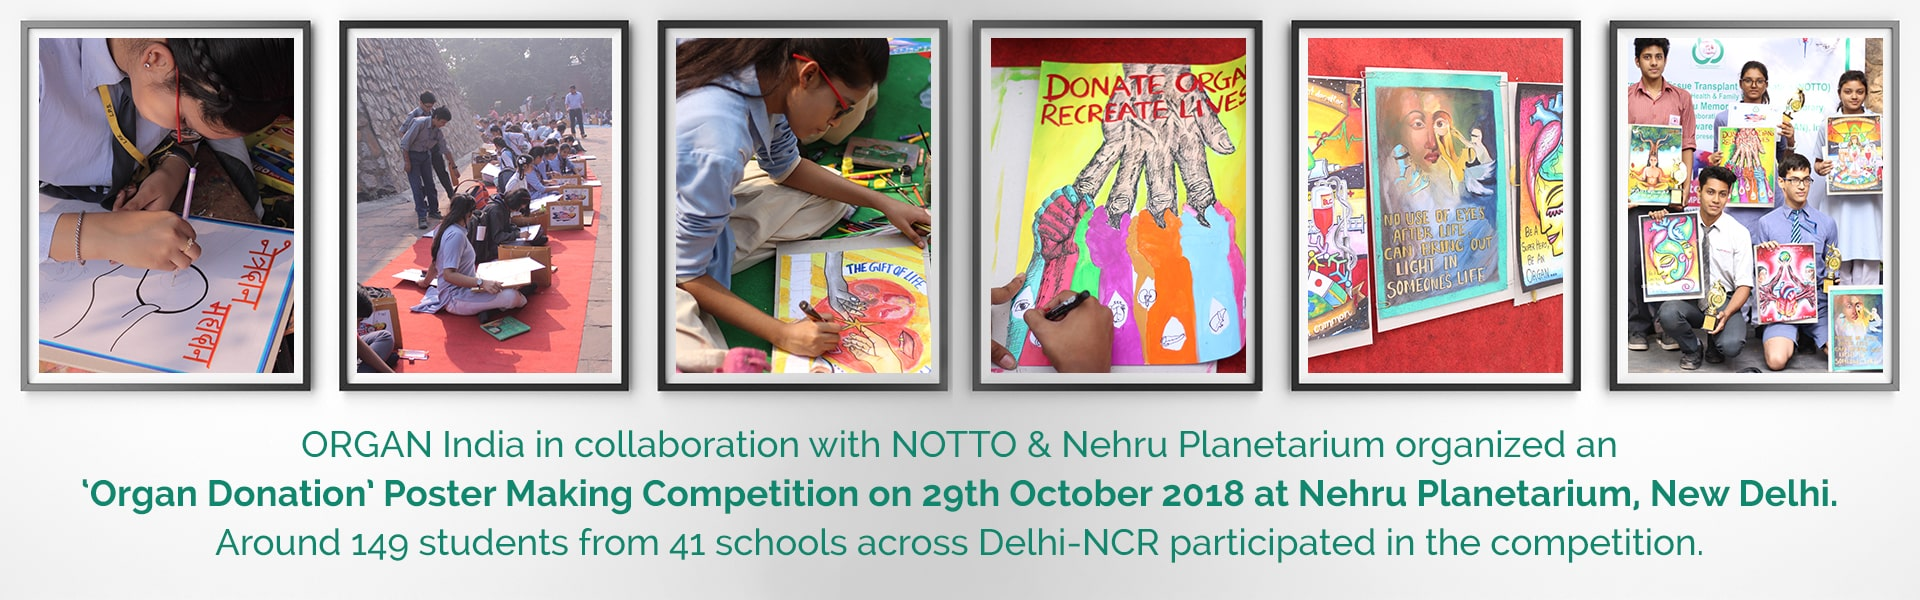 ORGAN India organized an Organ donation poster making competition